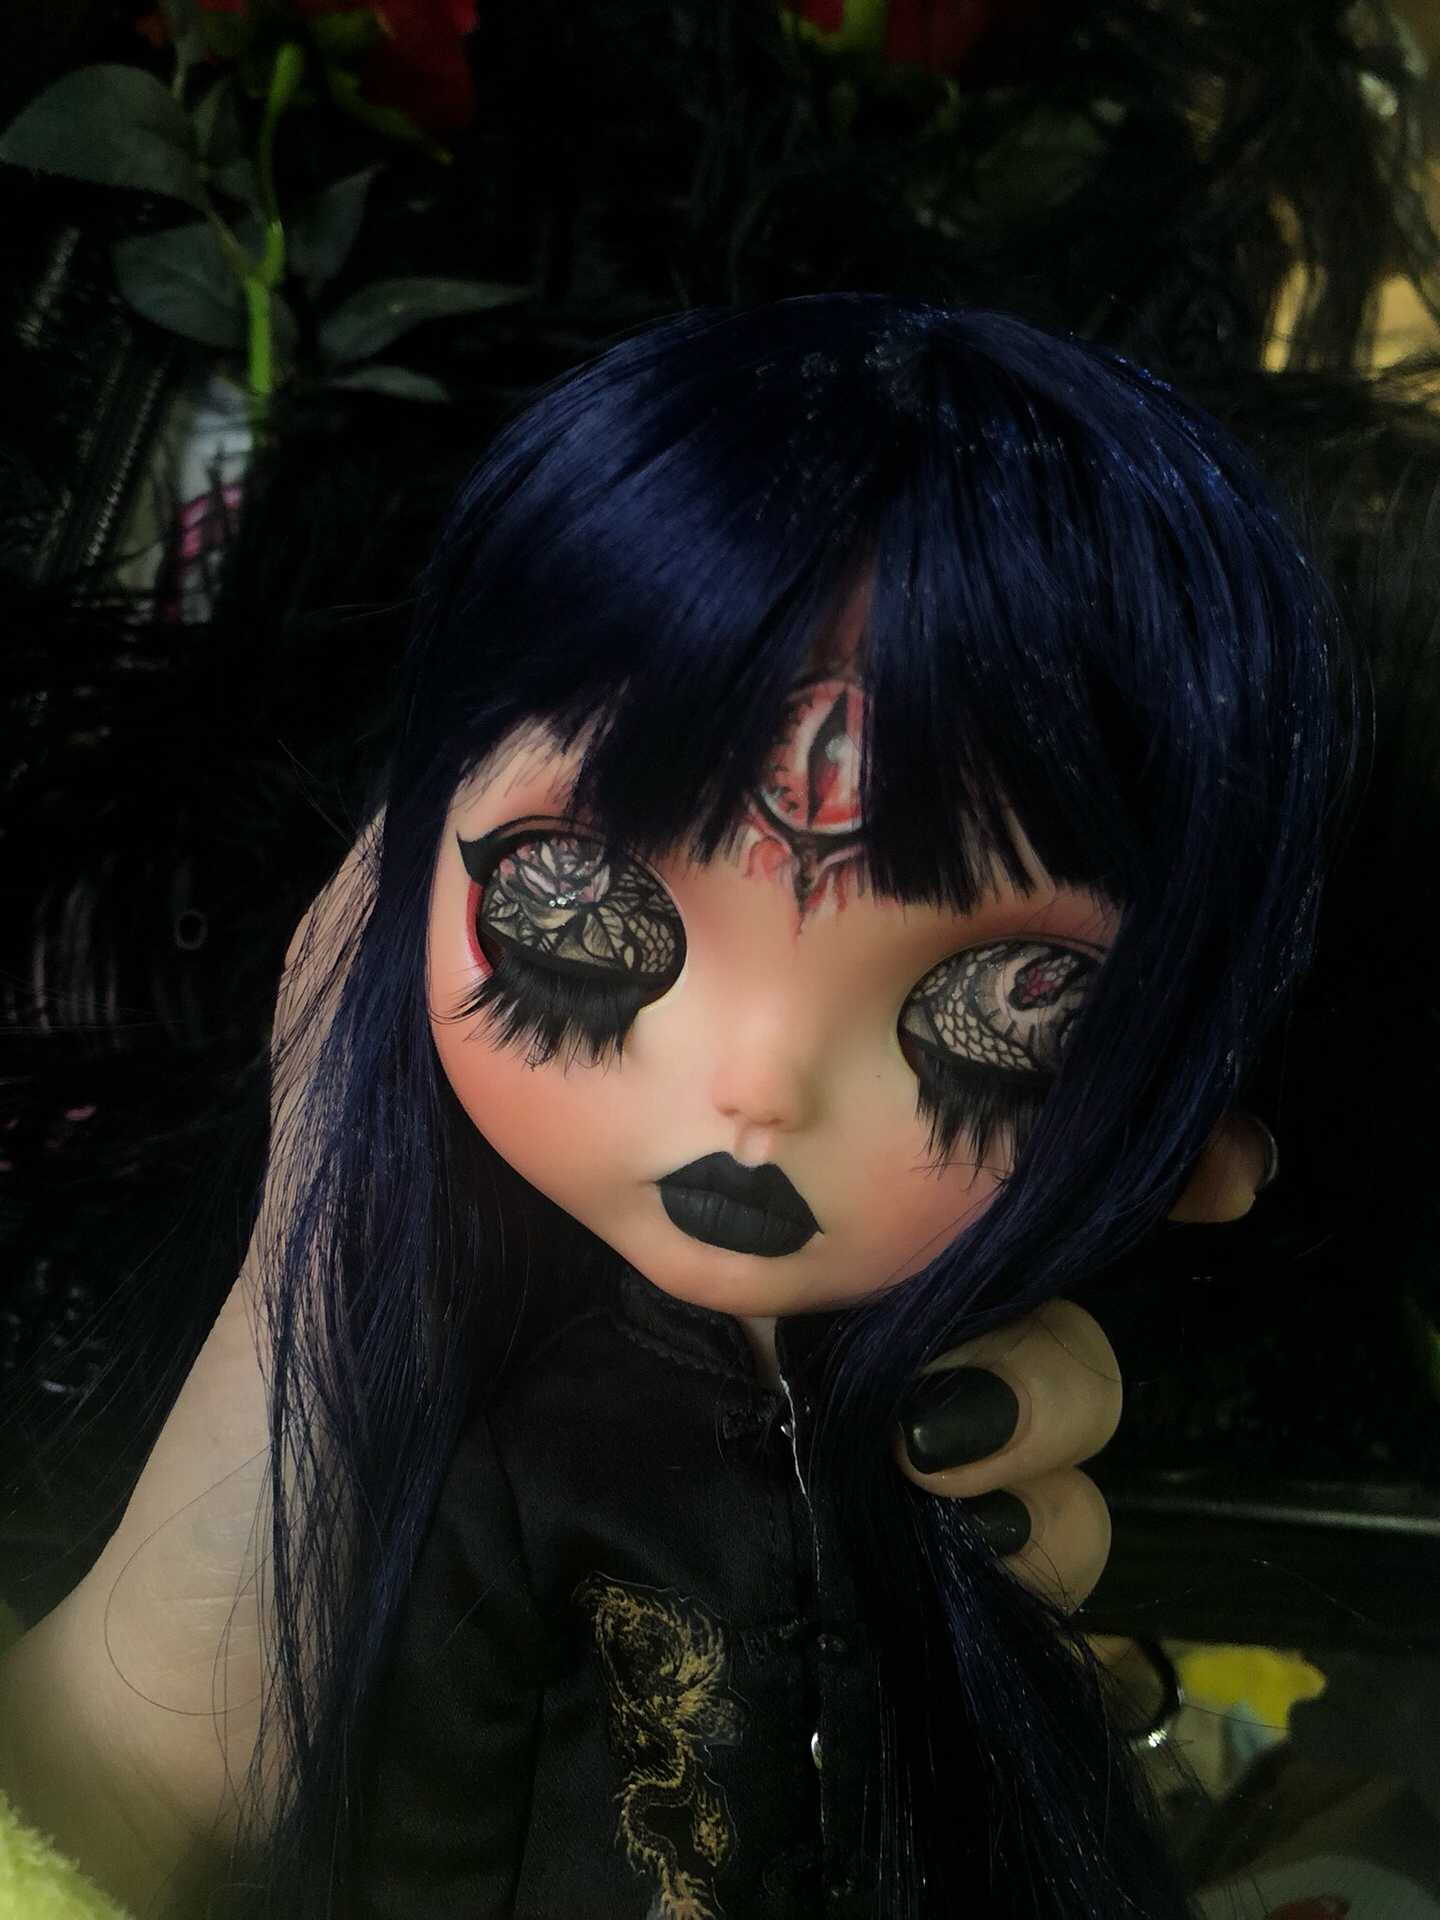 Black Licca Doll Body Replacement Doll Body Doll Body Blythe Doll Custom Black Blythe Doll Body Body for Blythe Size Small Blythe